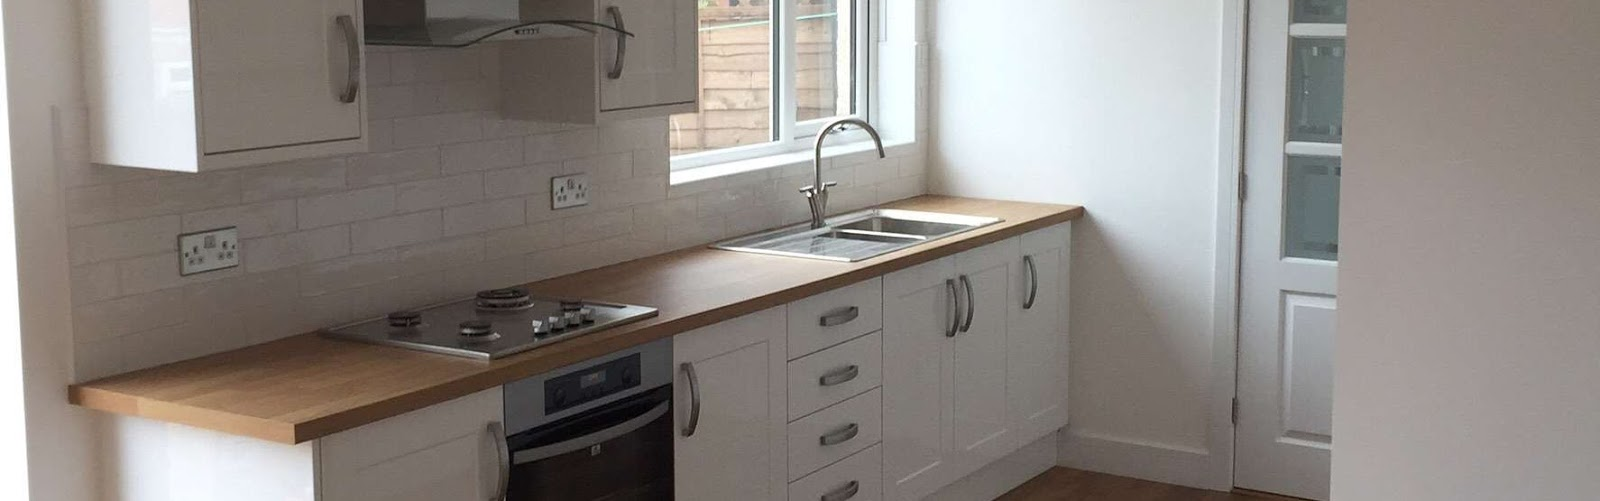 Kitchen Sink, Stove and Tiling